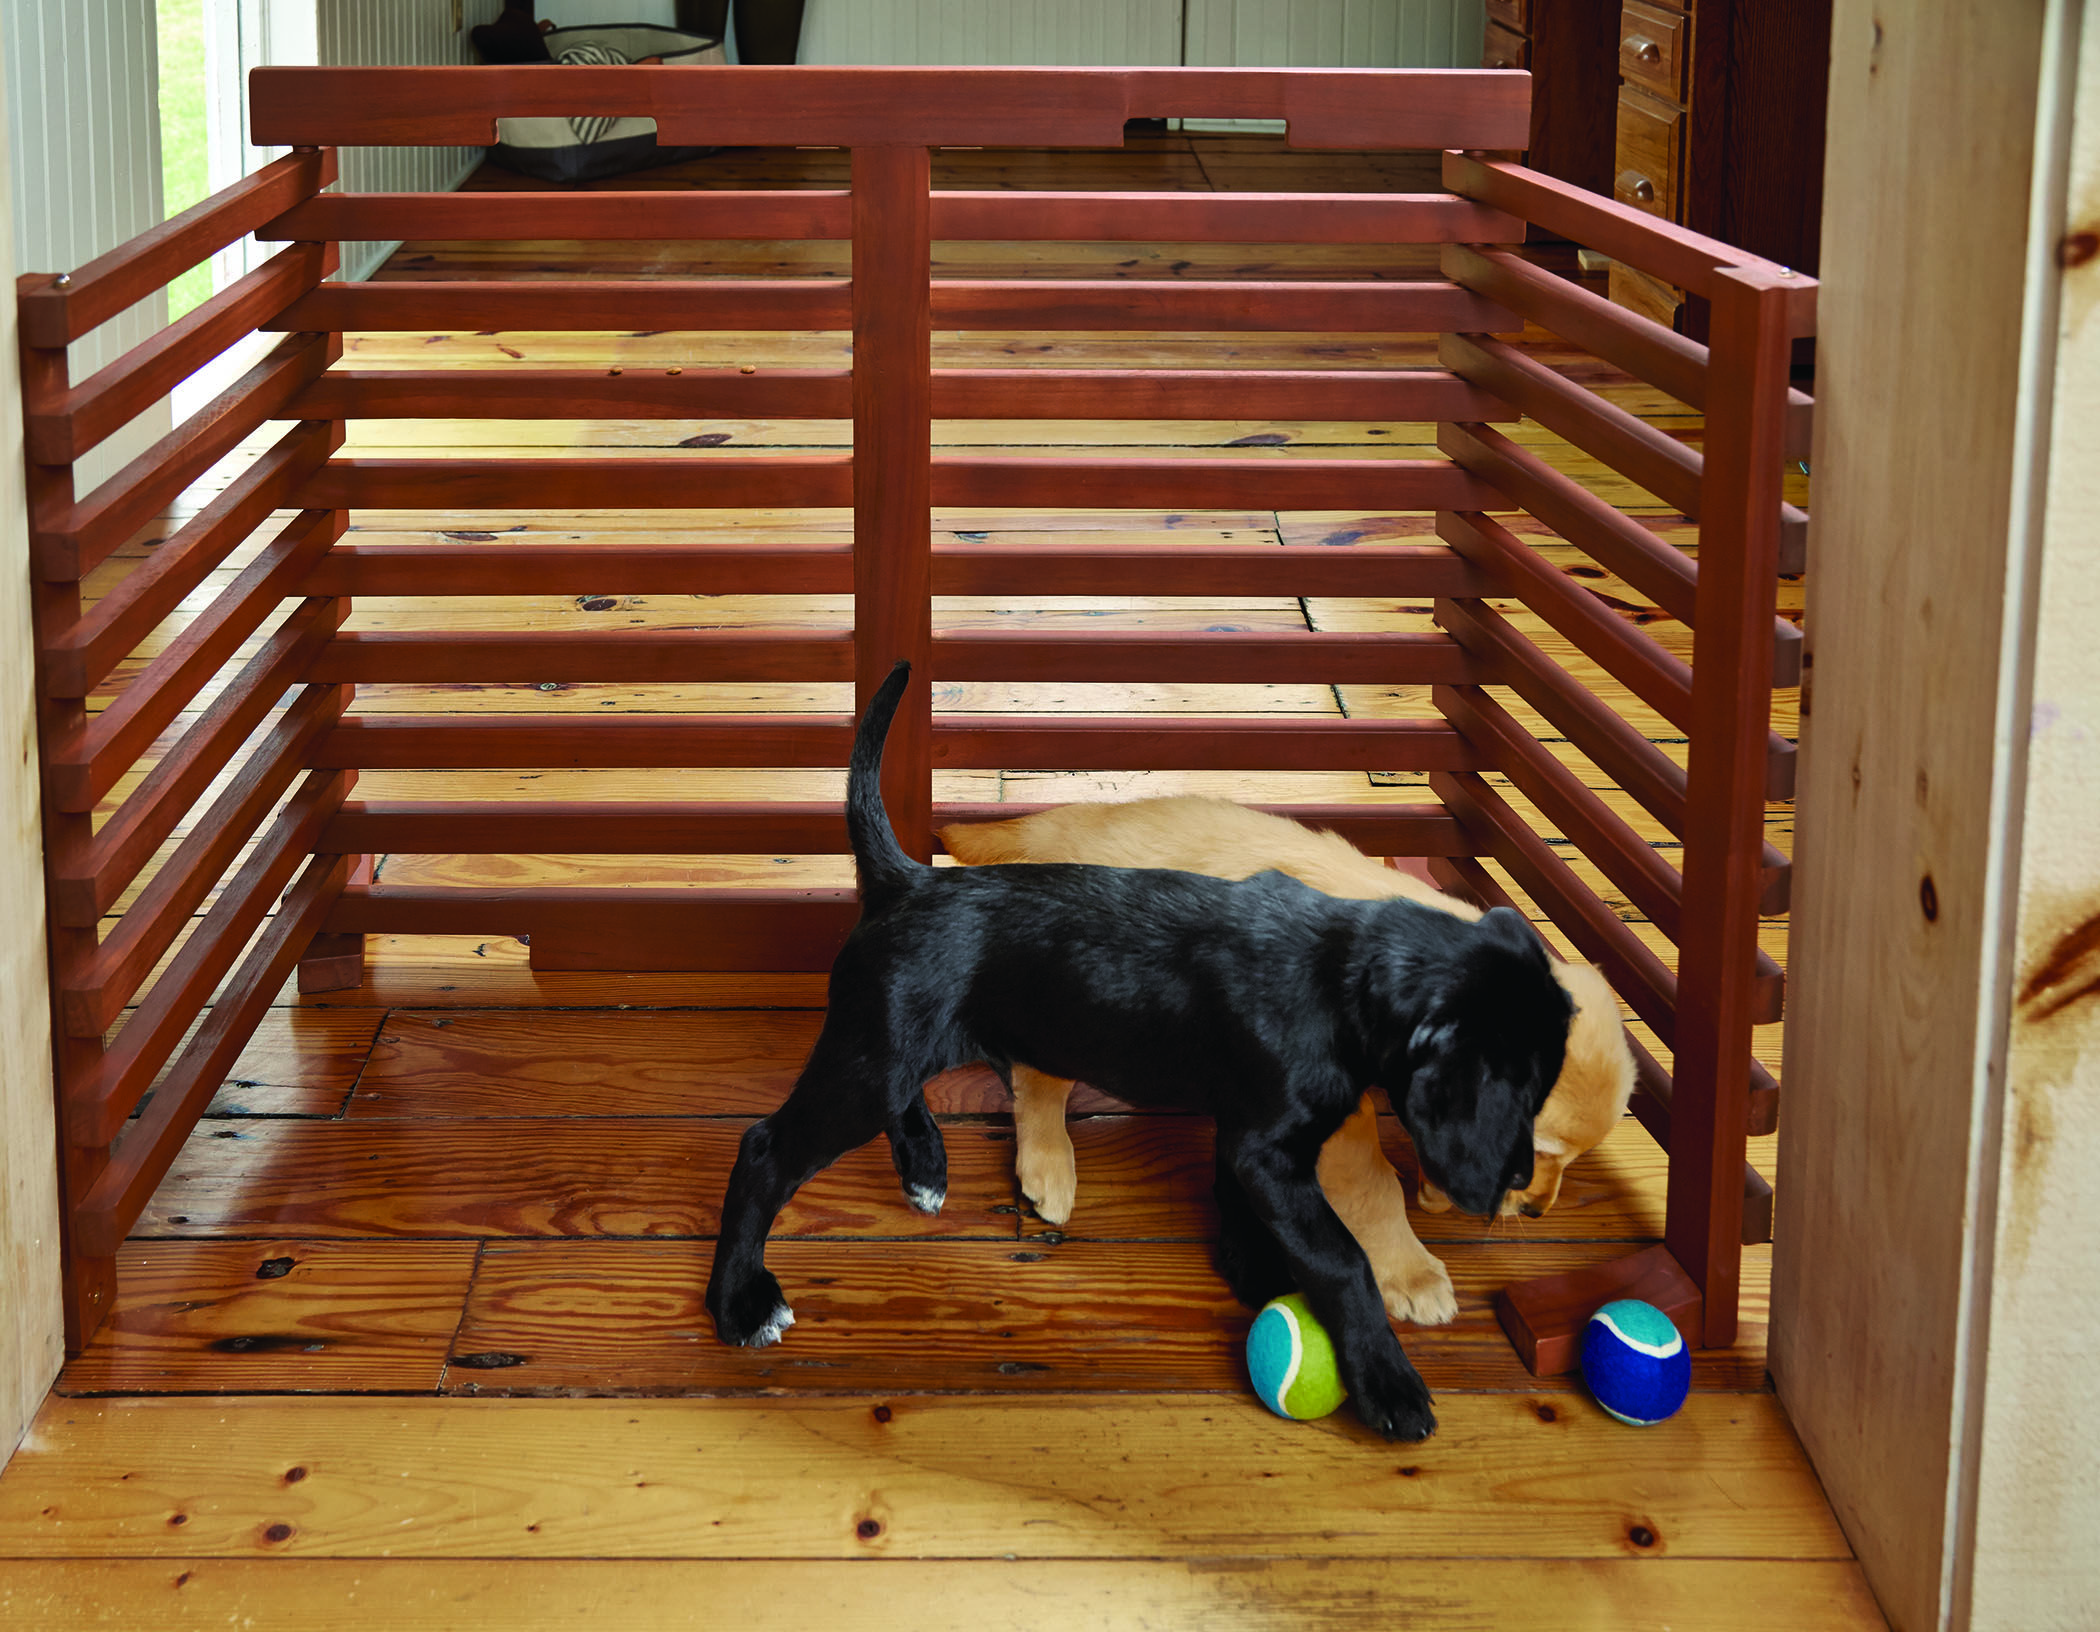 Pet Furniture That Adds Style to Your Home Diy dog gate